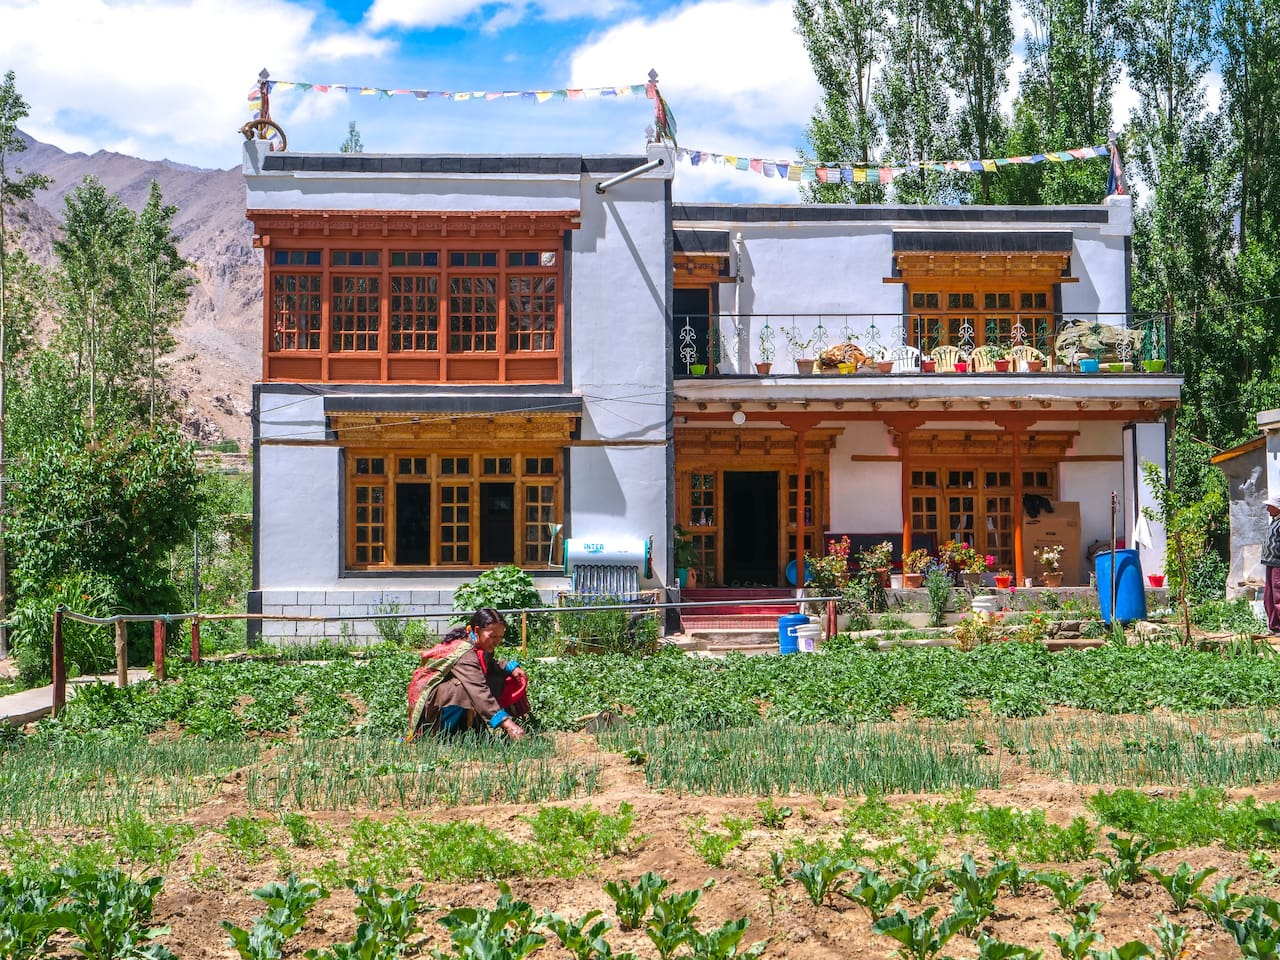 Farmstay Amaley working on her annual vegetable garden during the growing summer season.